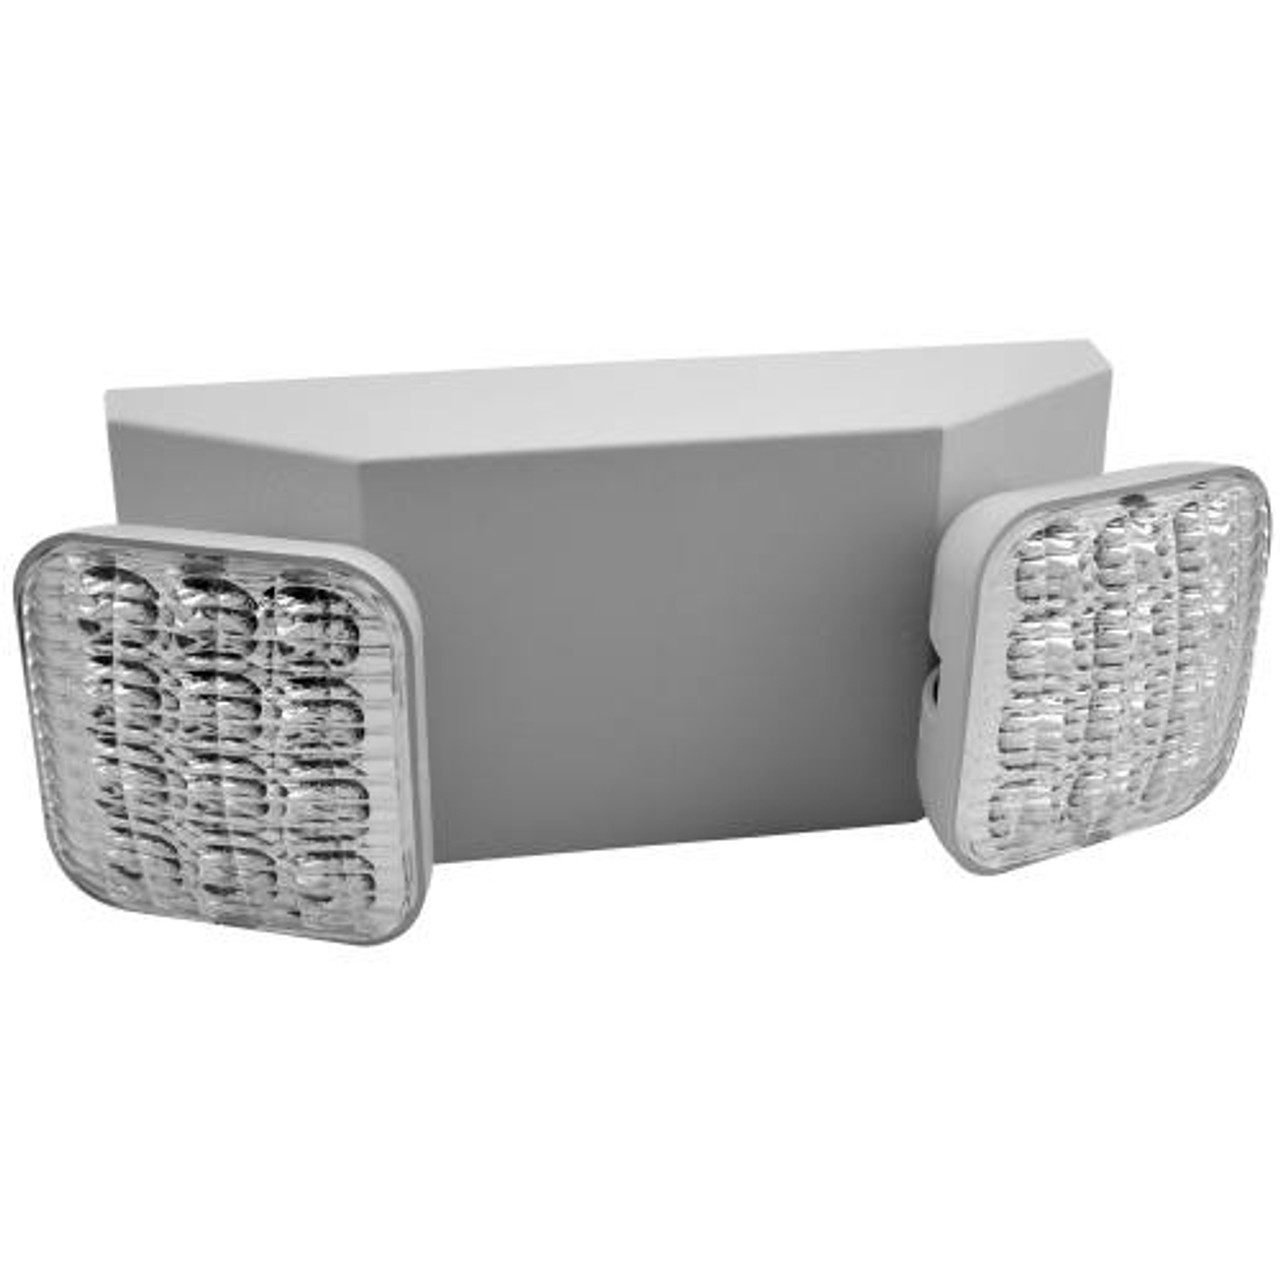 2 Head White Emergency Light with Battery Backup